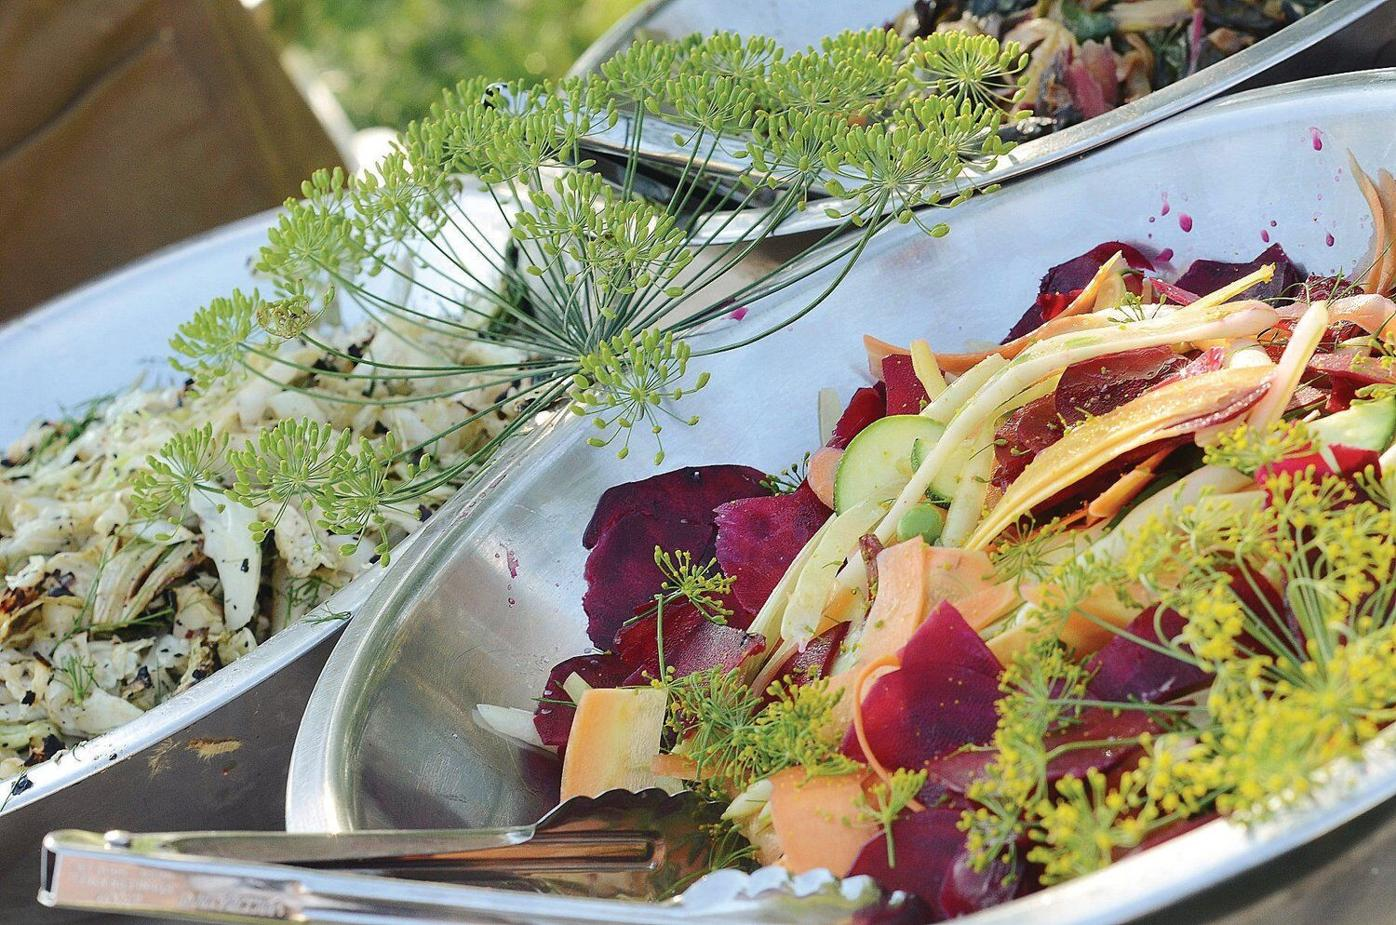 Only a few steps from farm to table at chef Brian Alberg's cooking class